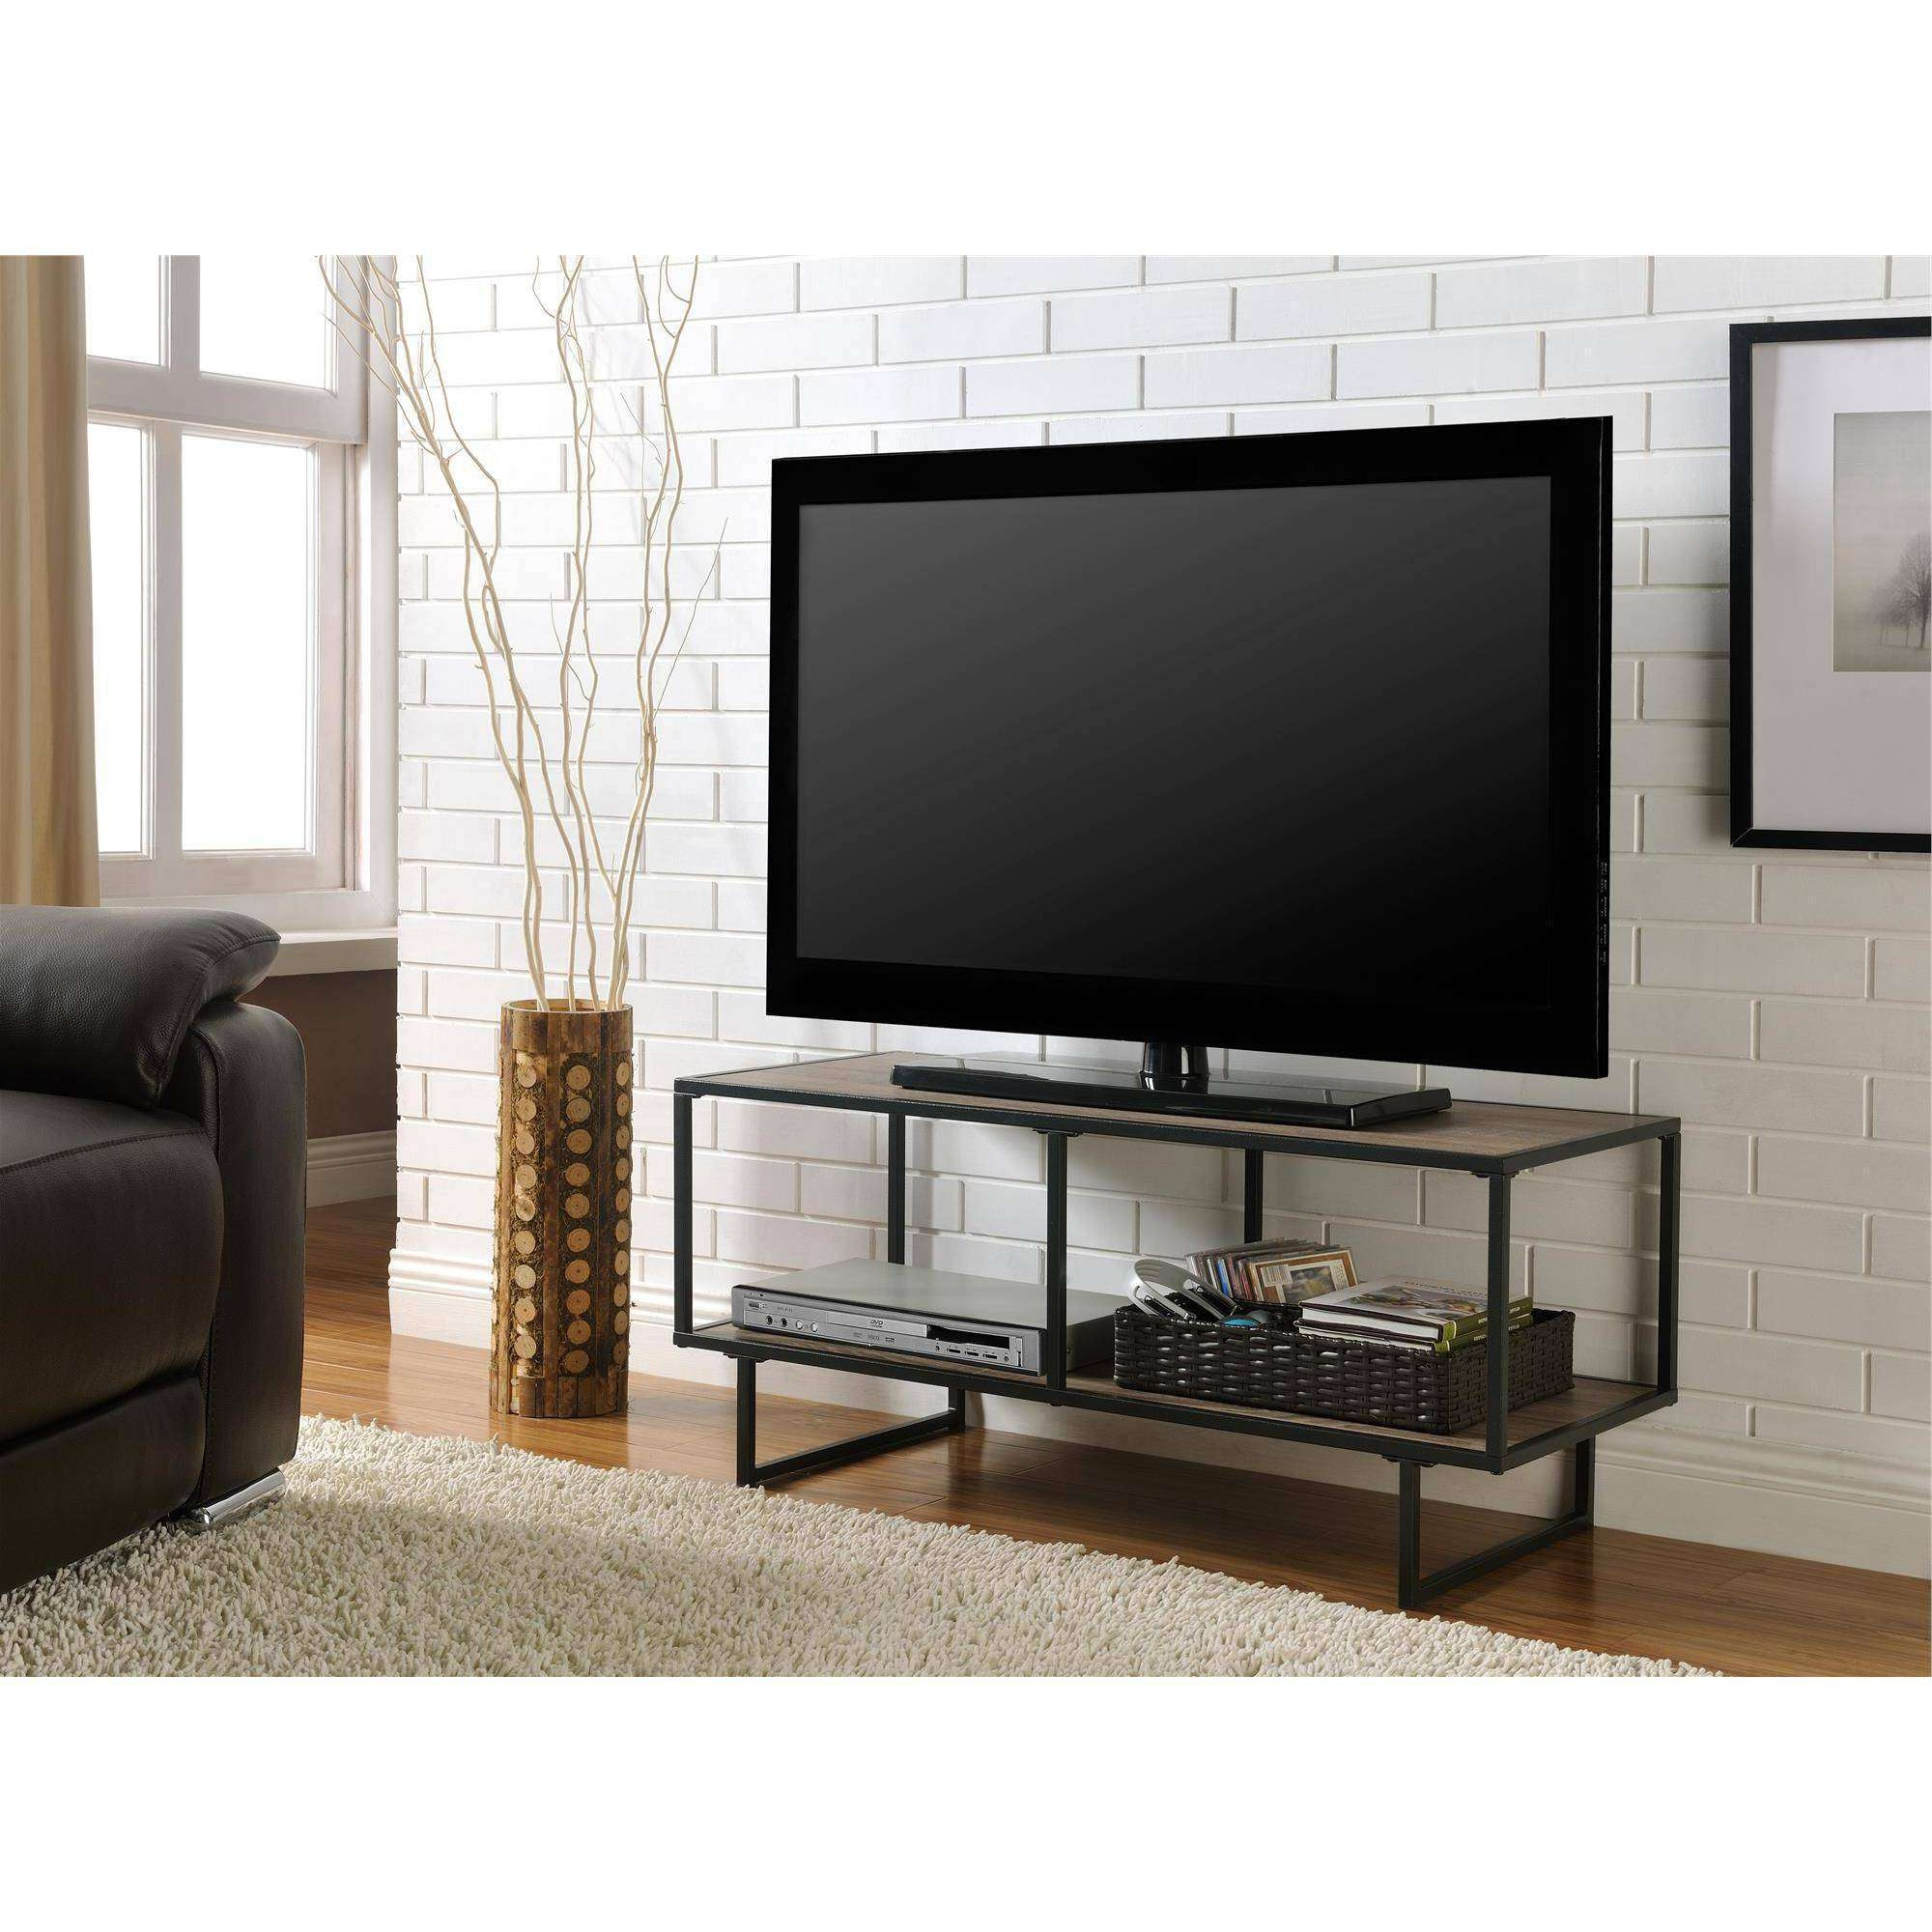 Coffee Table : Wonderful Coffee And Side Table Set Rolling Tv Within Tv Cabinets And Coffee Table Sets (View 19 of 20)